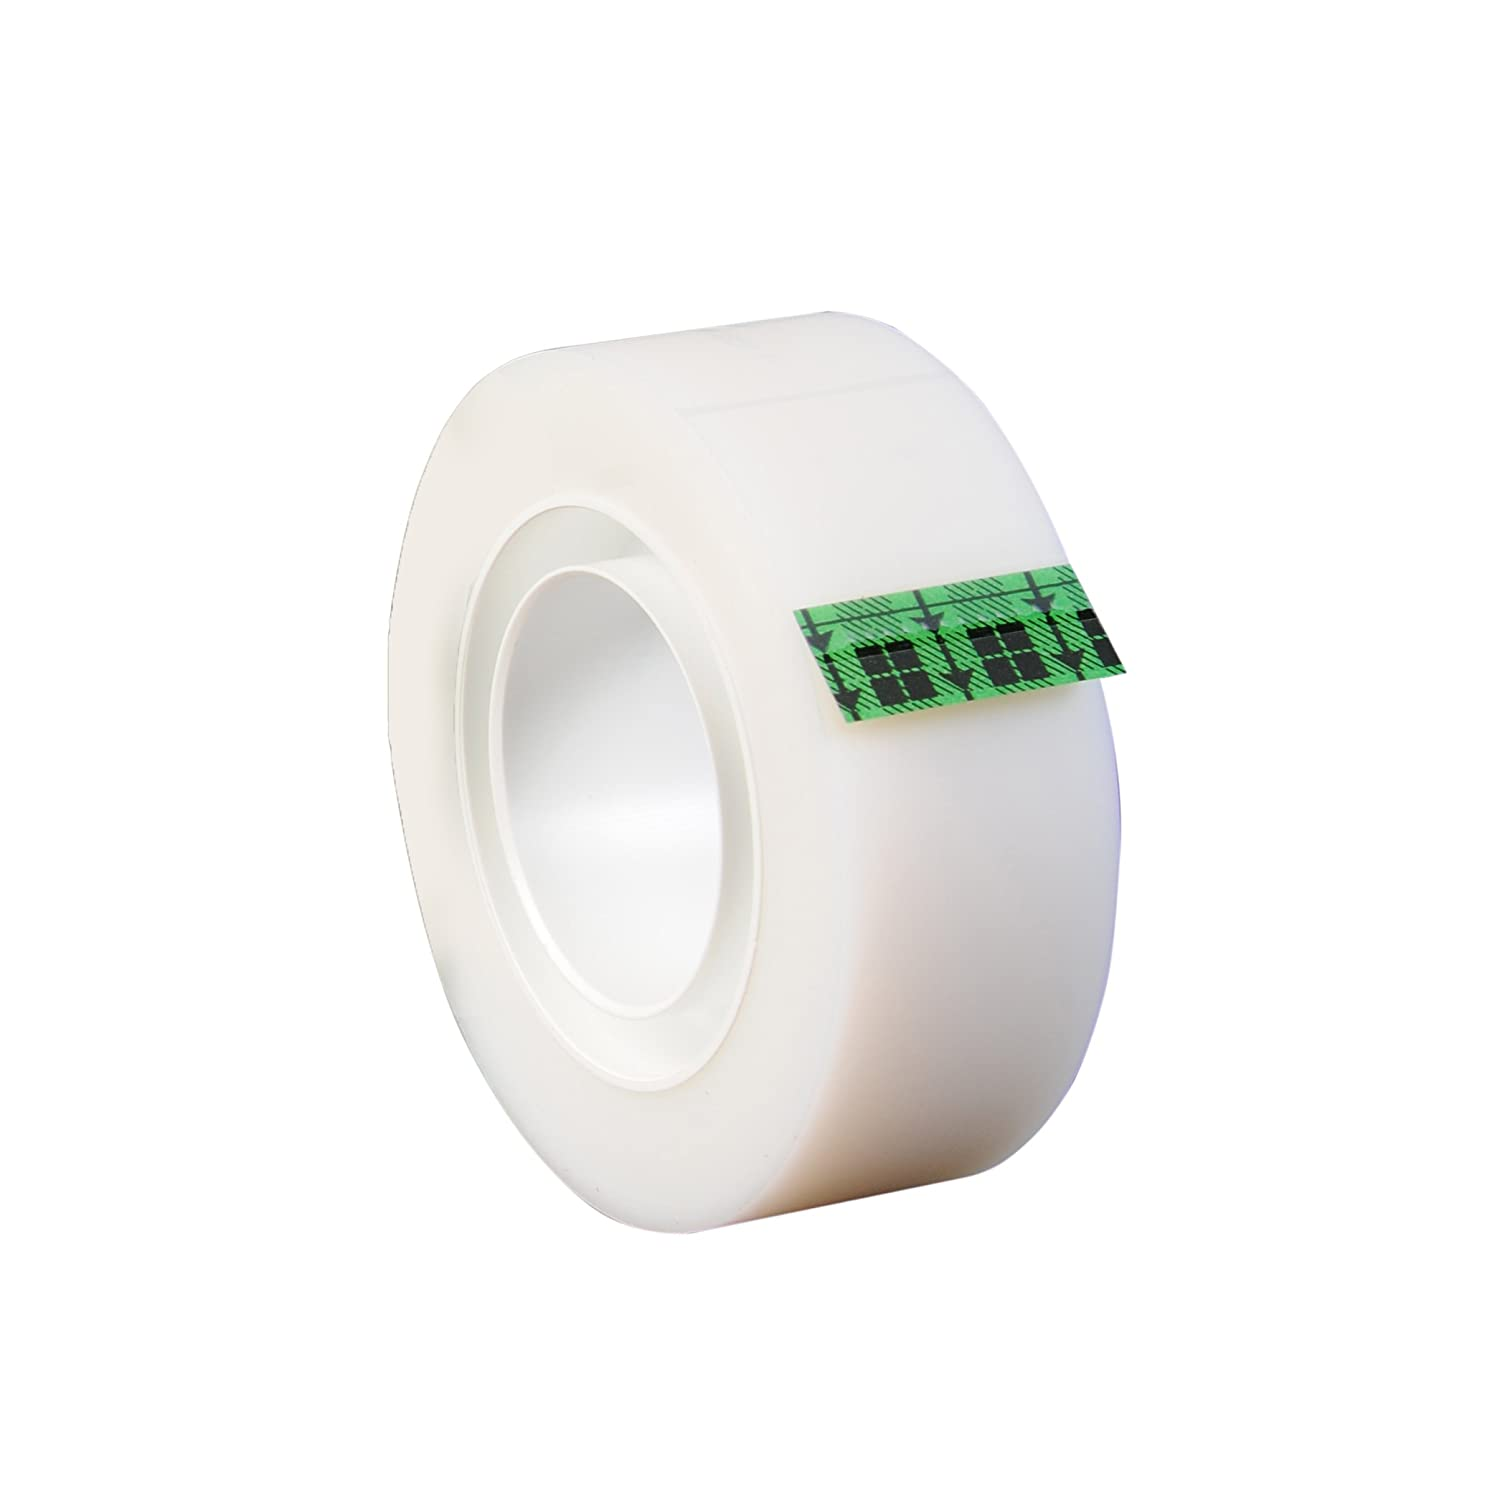 Scotch Brand Magic Tape, Standard Width, 3/4 x 1296 Inches, Boxed, 3 Rolls (810-3PK) 3M Office Products